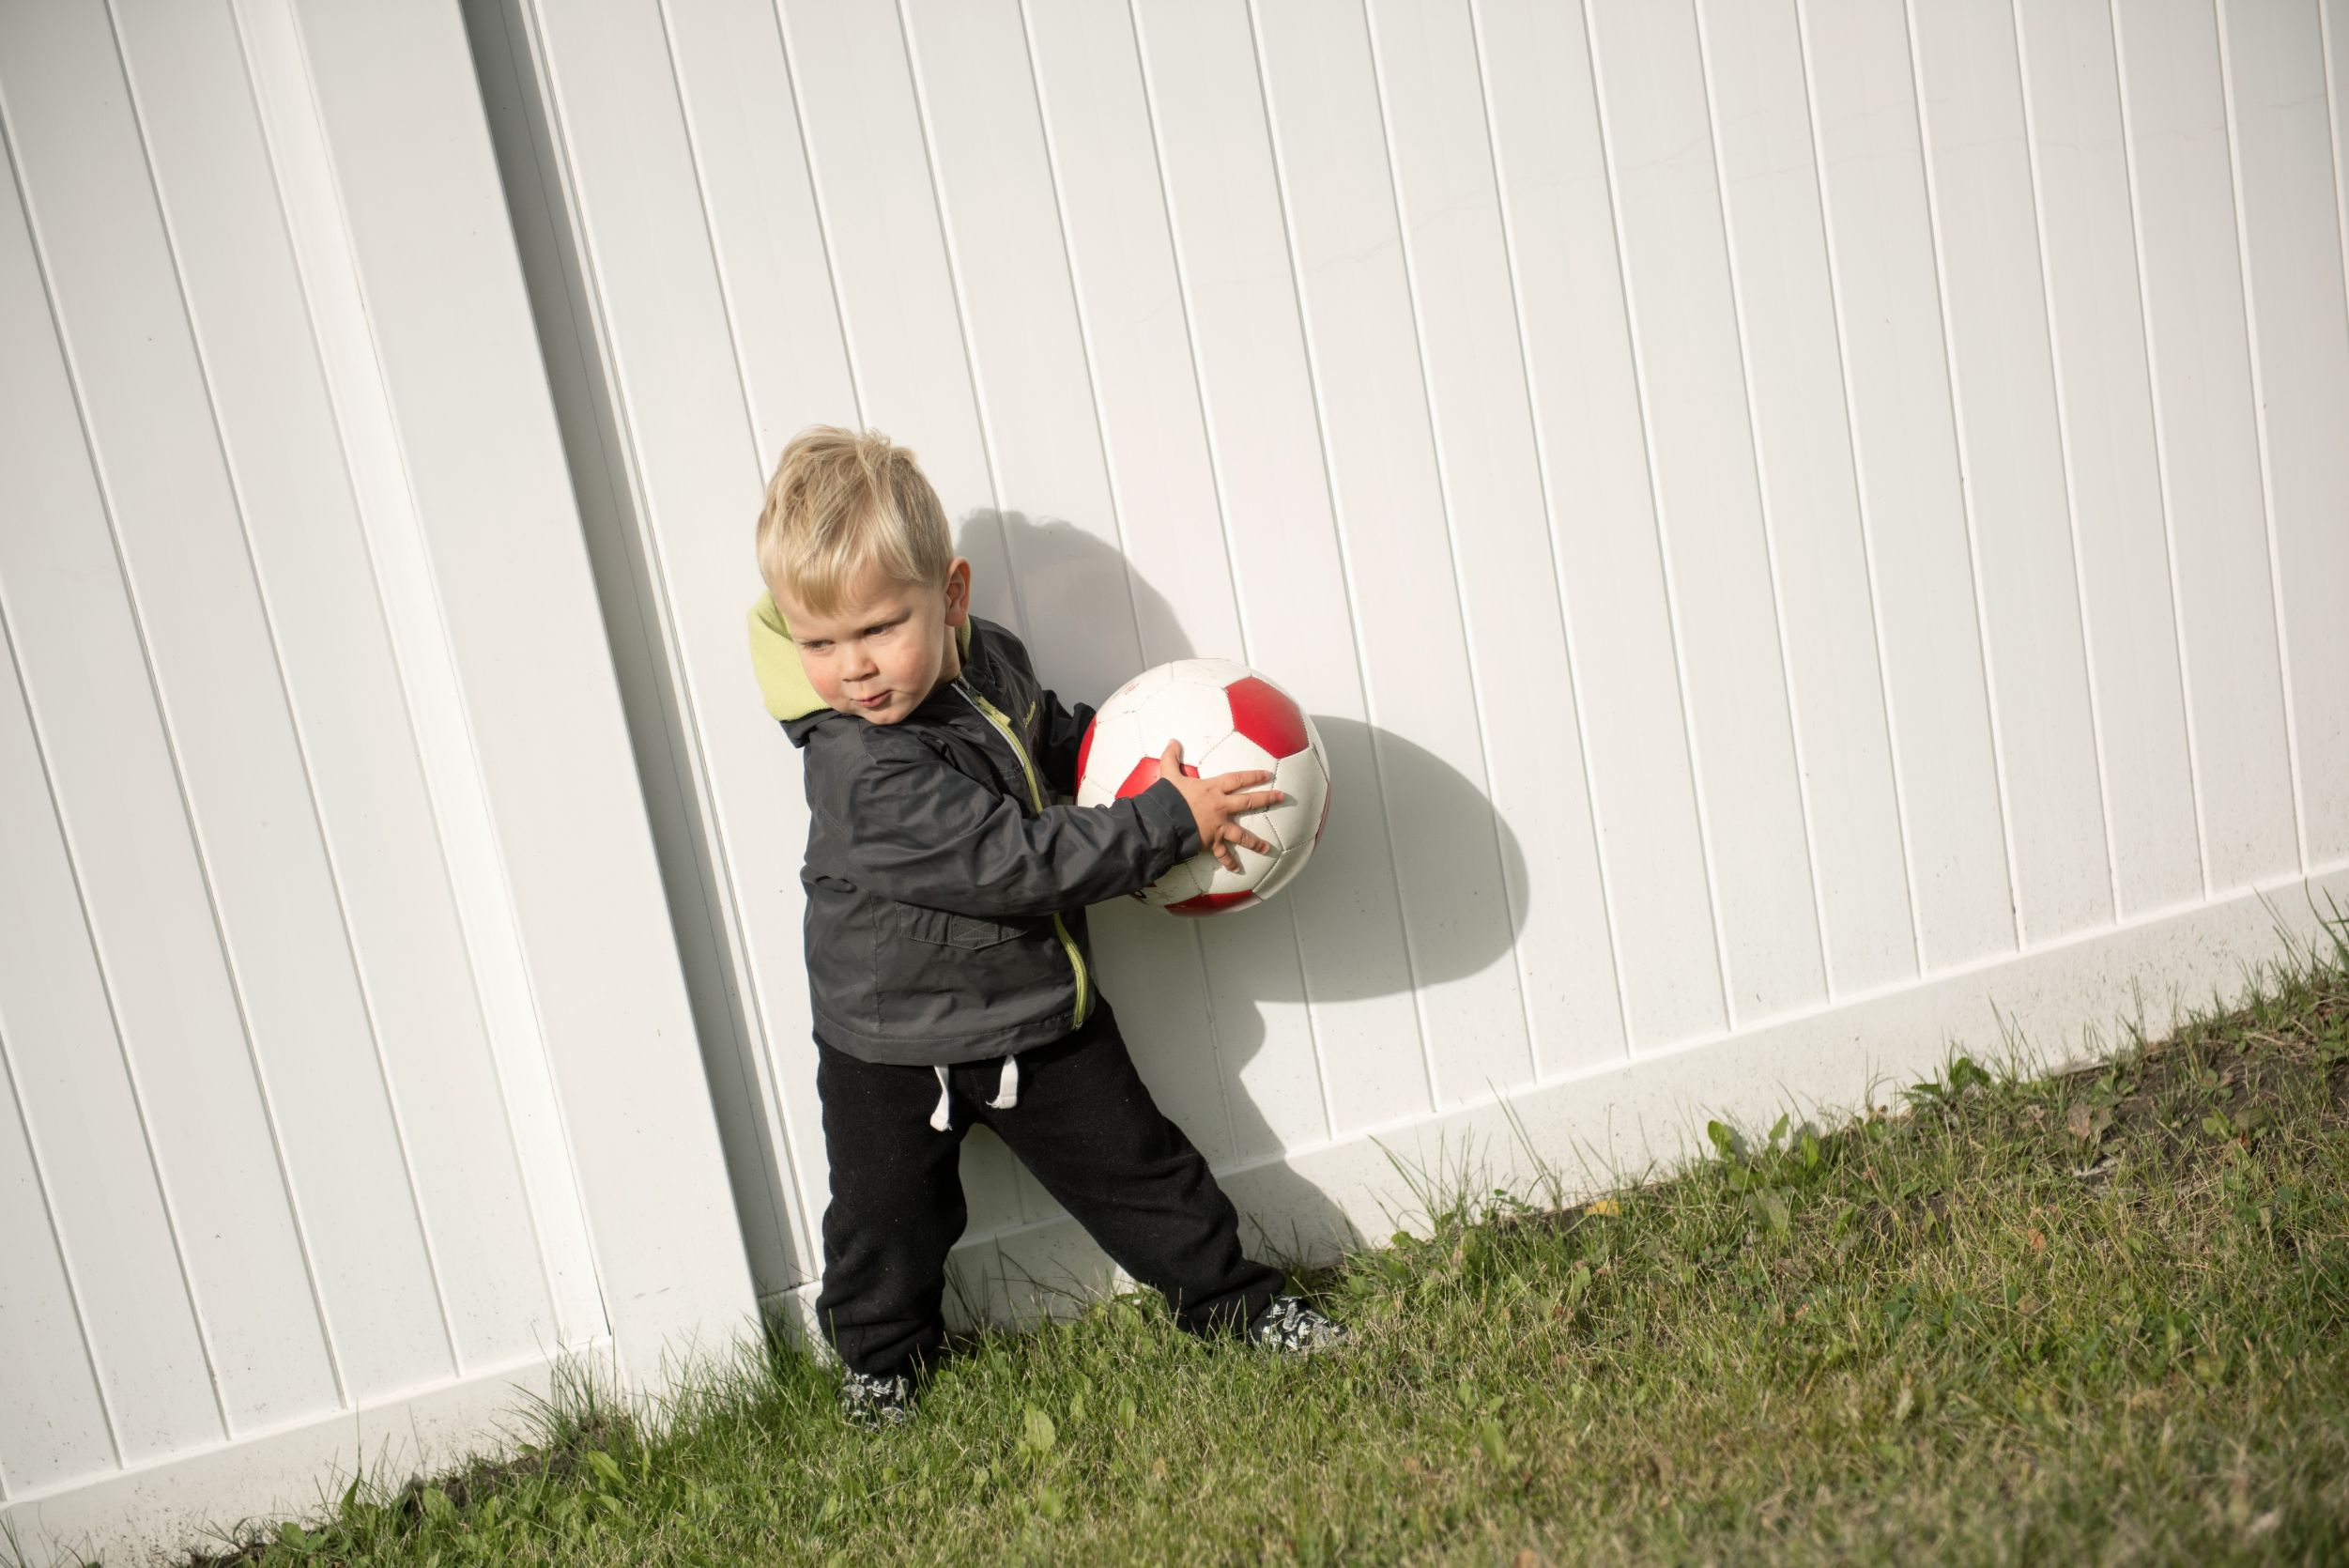 Kid throughing ball